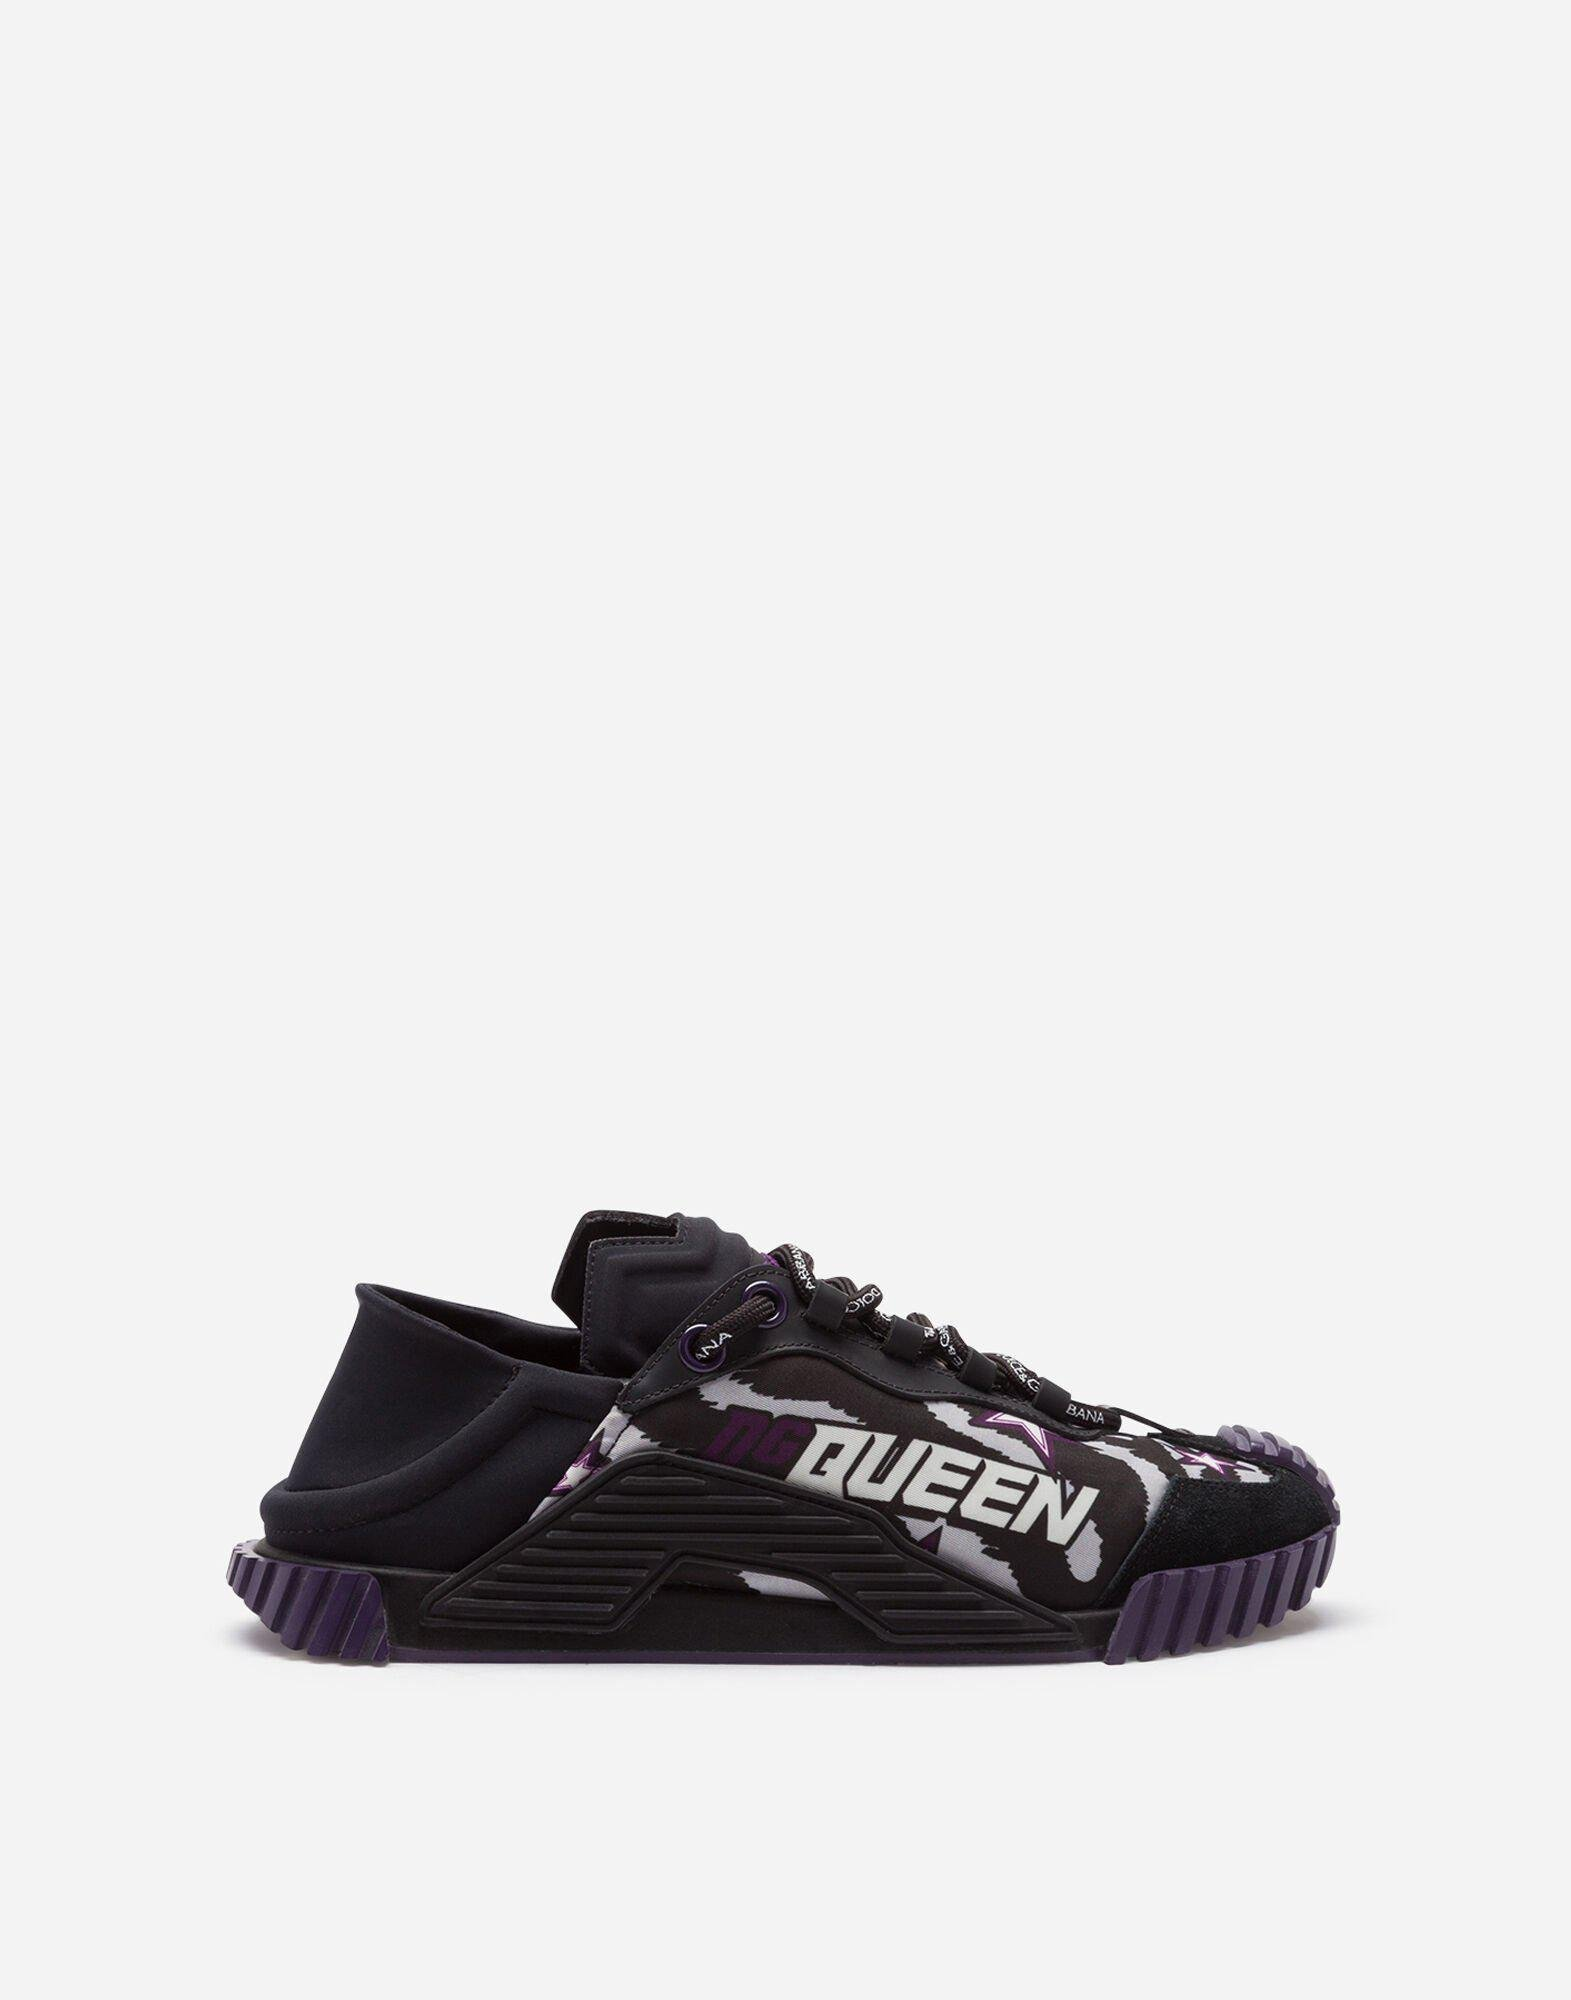 Slip-on NS1 sneakers in mixed materials with jungle print and purple bottom